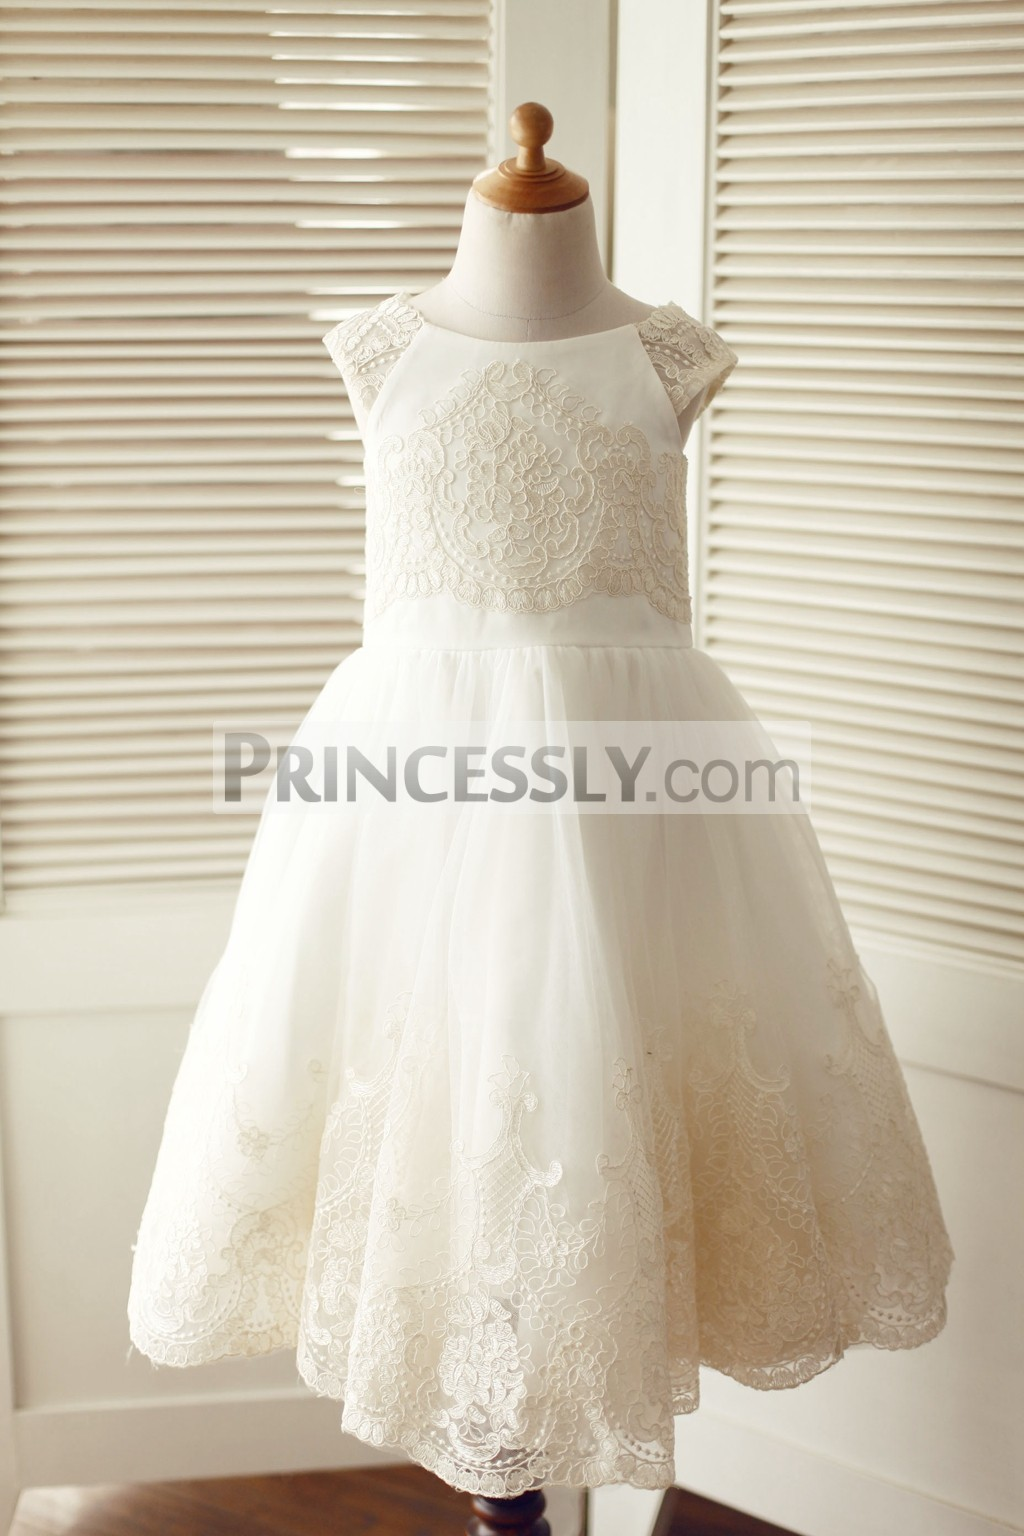 Cap sleeves champagne lace ivory tulle wedding flower girl for Ivory champagne wedding dress